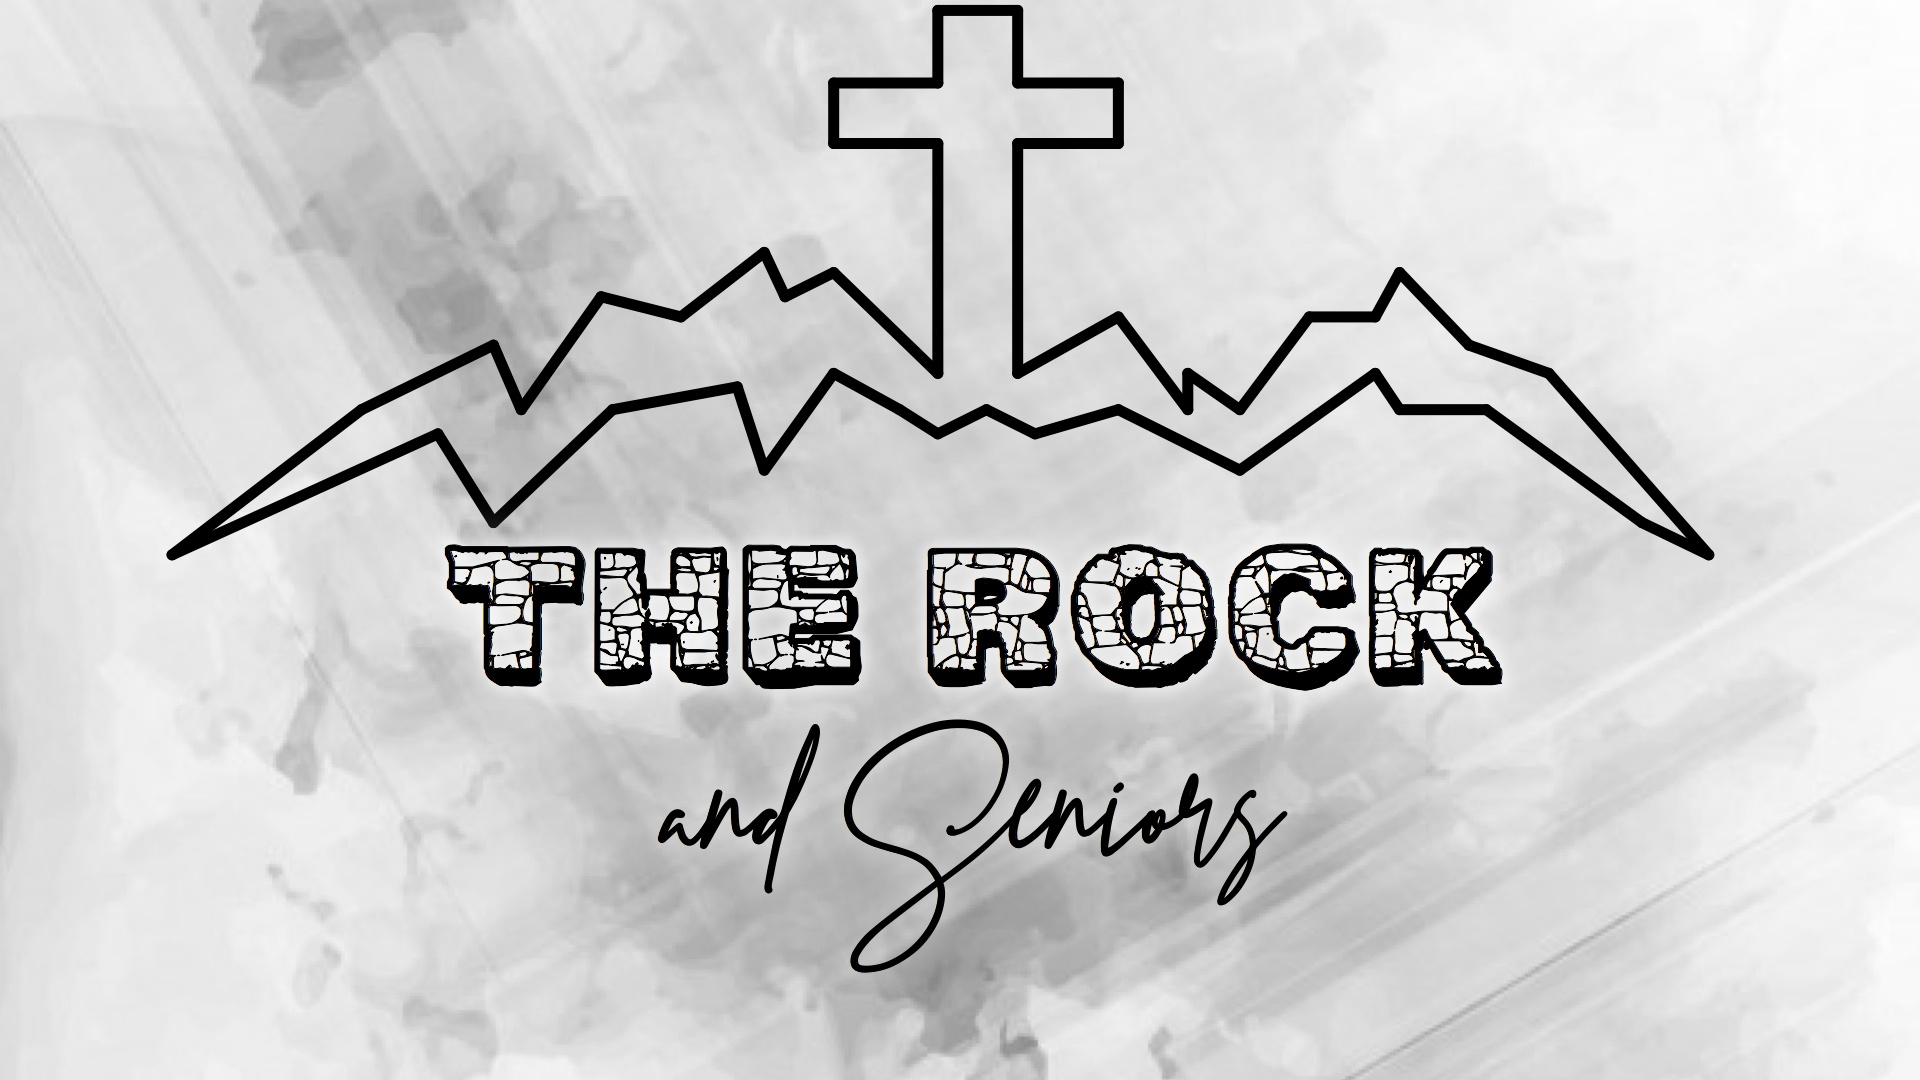 The Rock and Seniors - The Rock and Seniors is for anyone 55 years and older. This is an interactive bible study and time of fellowship and refreshments. We are currently meeting on the 2nd and 4th Thursday of each month at 10 AM at our church fellowship hall at 27895 Menifee Rd. Menifee, Ca 92586